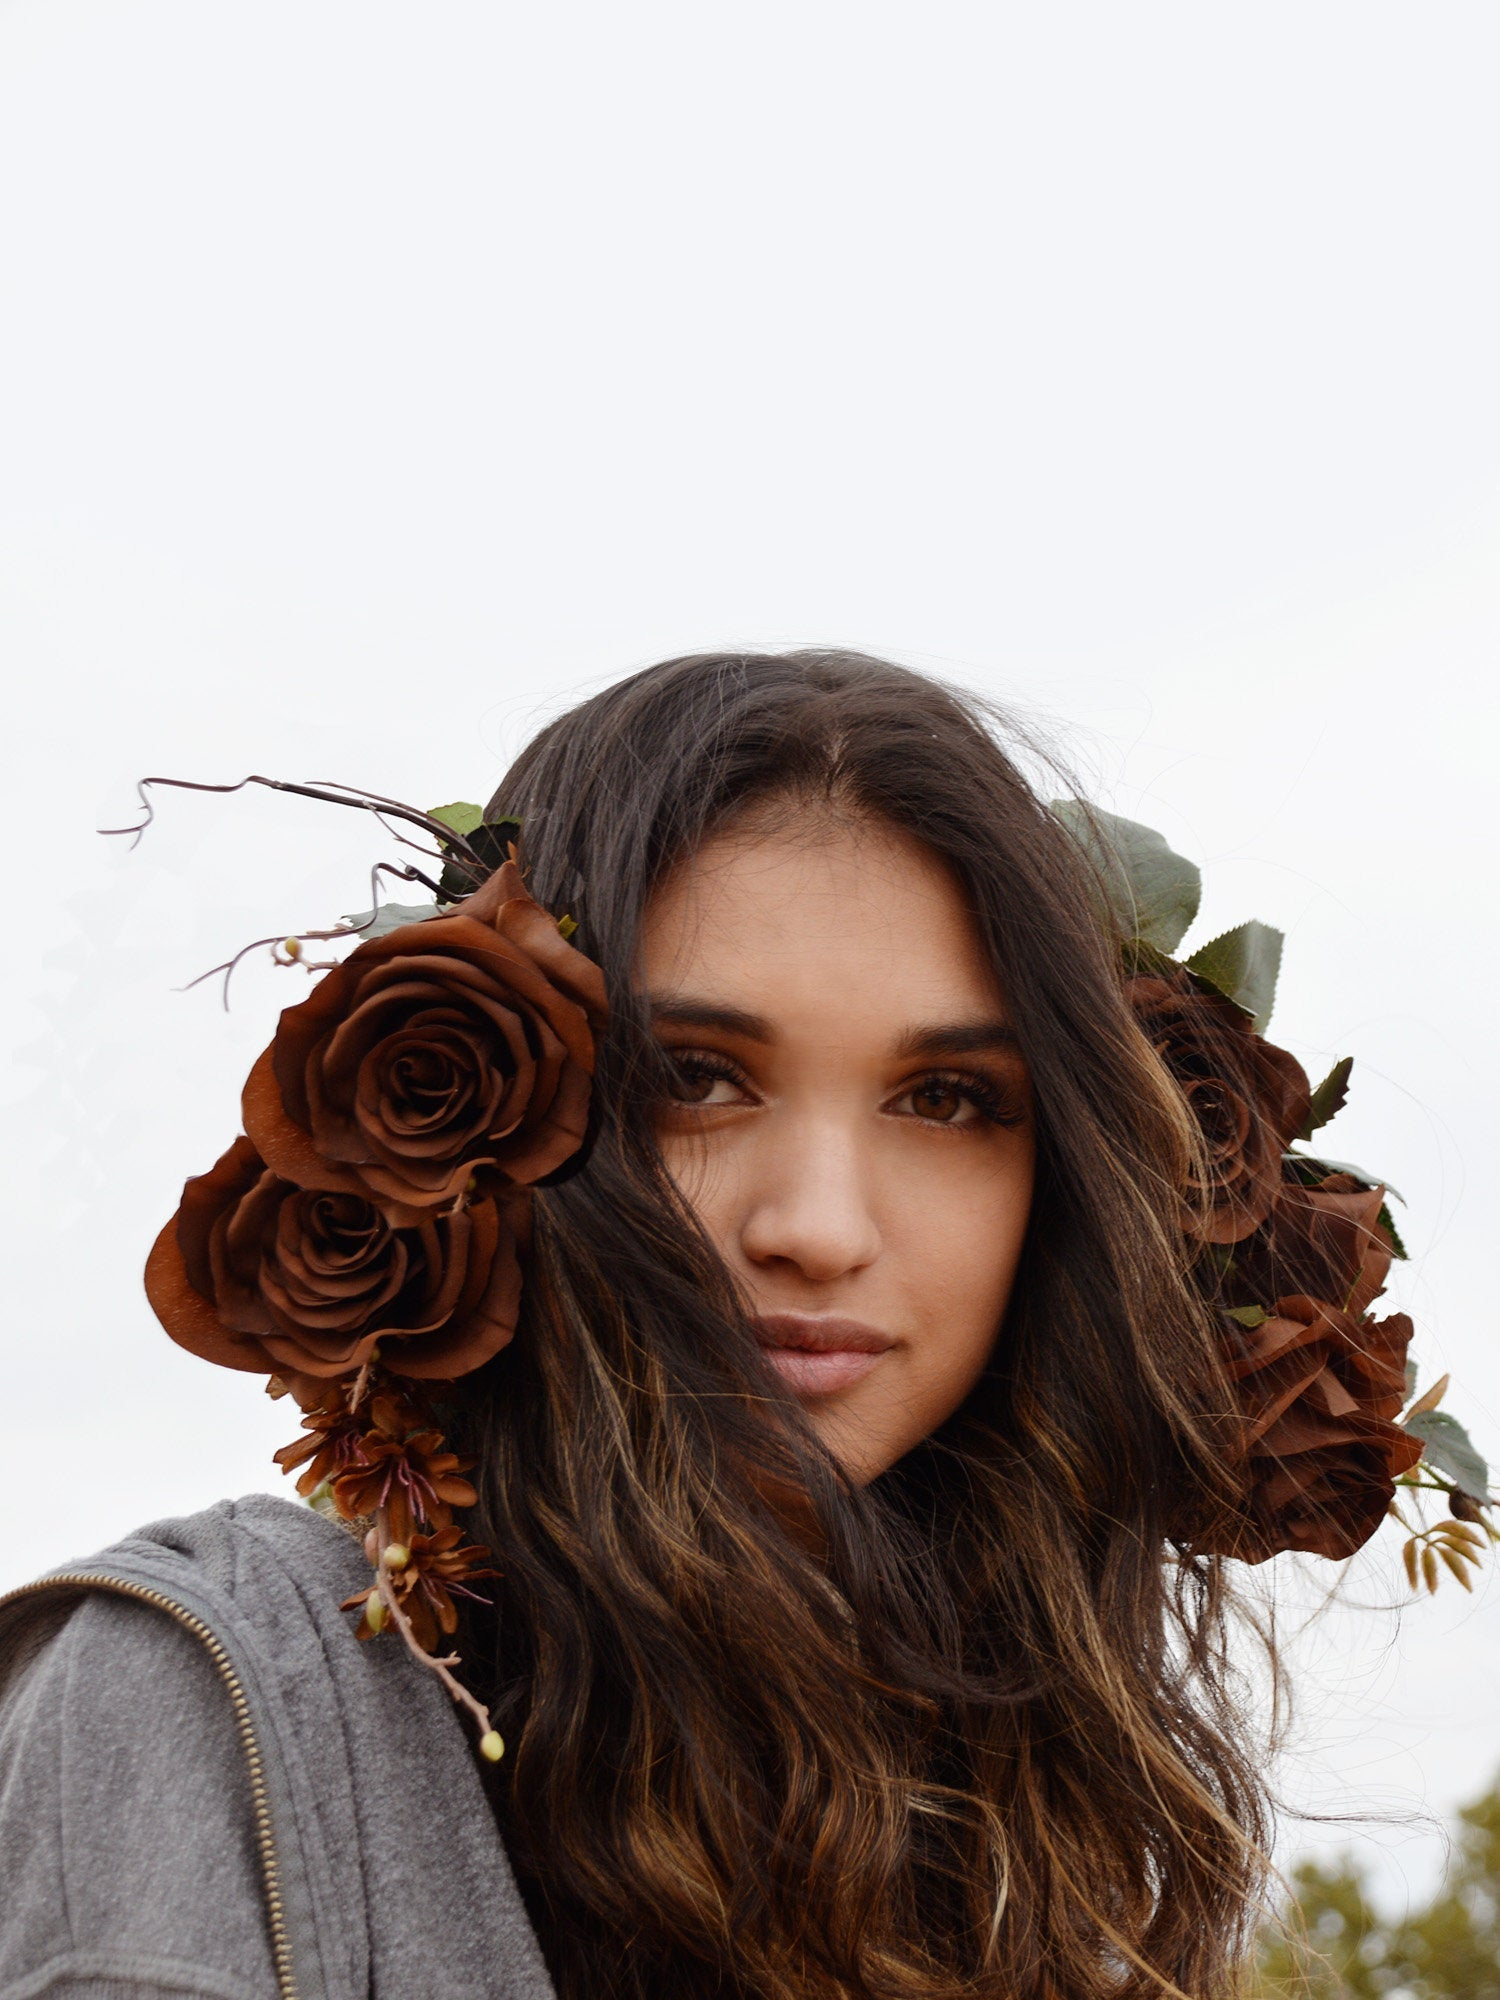 Woman wearing bohemian flower crown with brown roses.